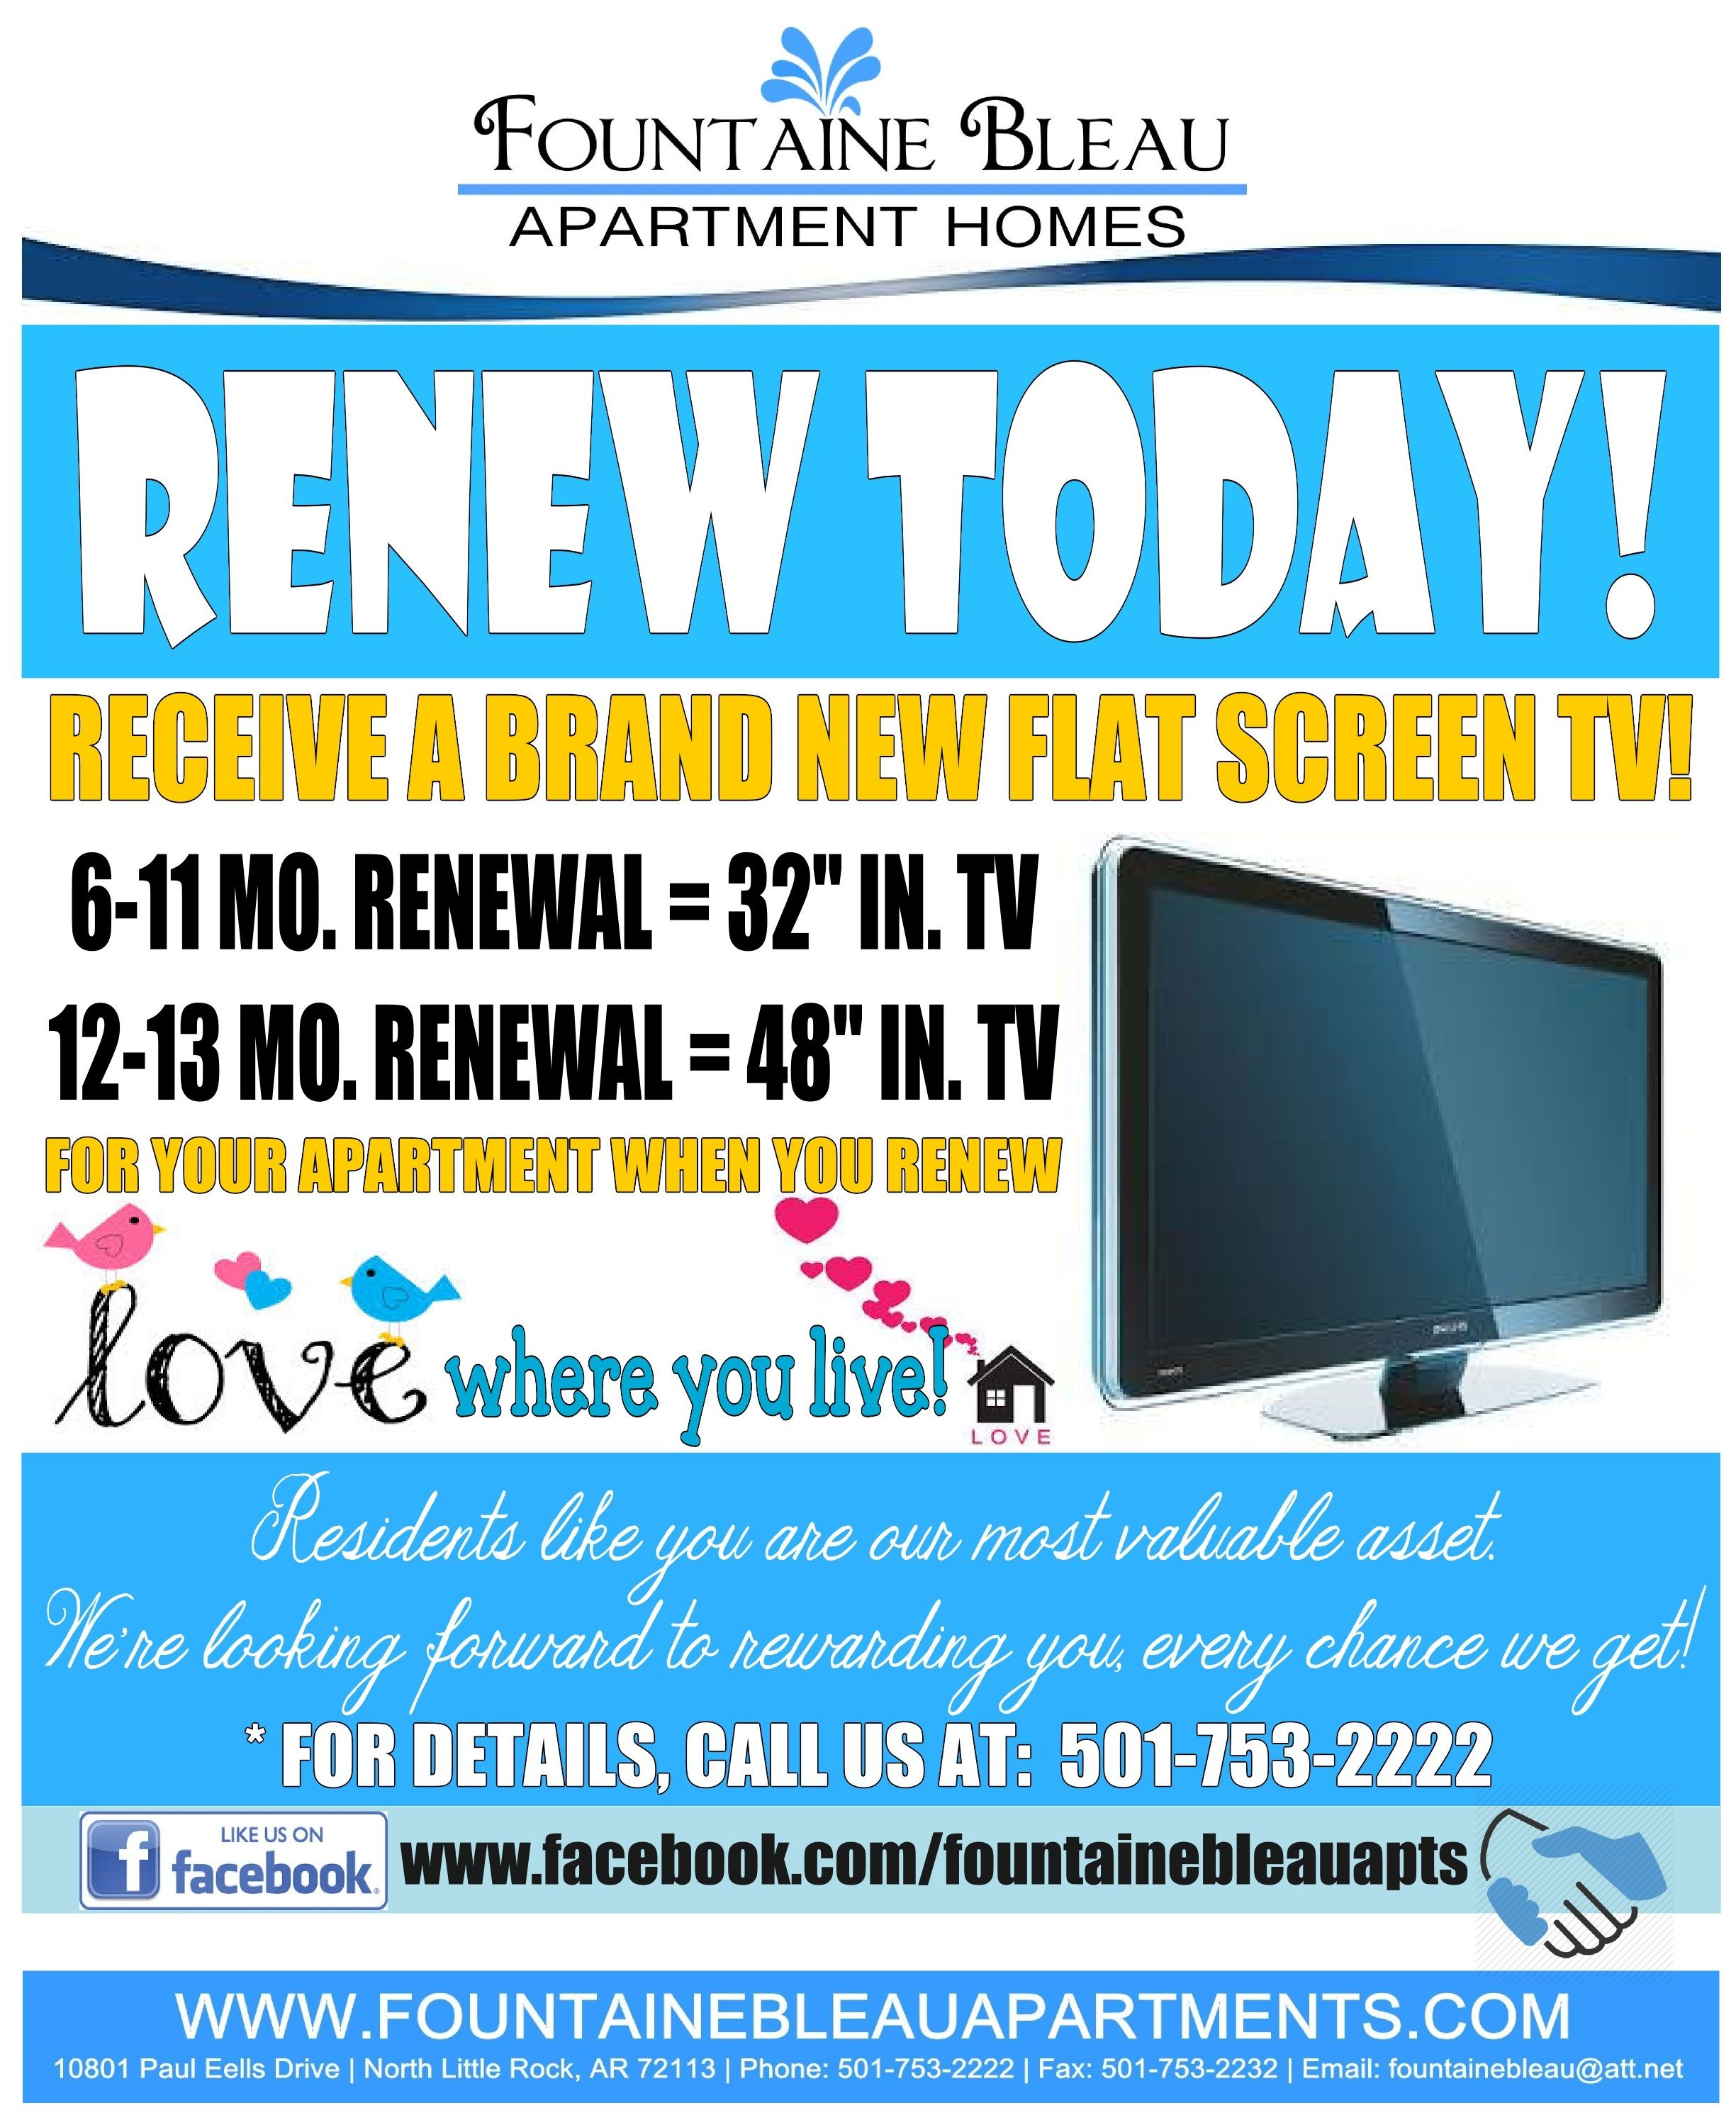 Apartment For Rent Flyer: Lease Renewal Flyer I Made For Our Residents